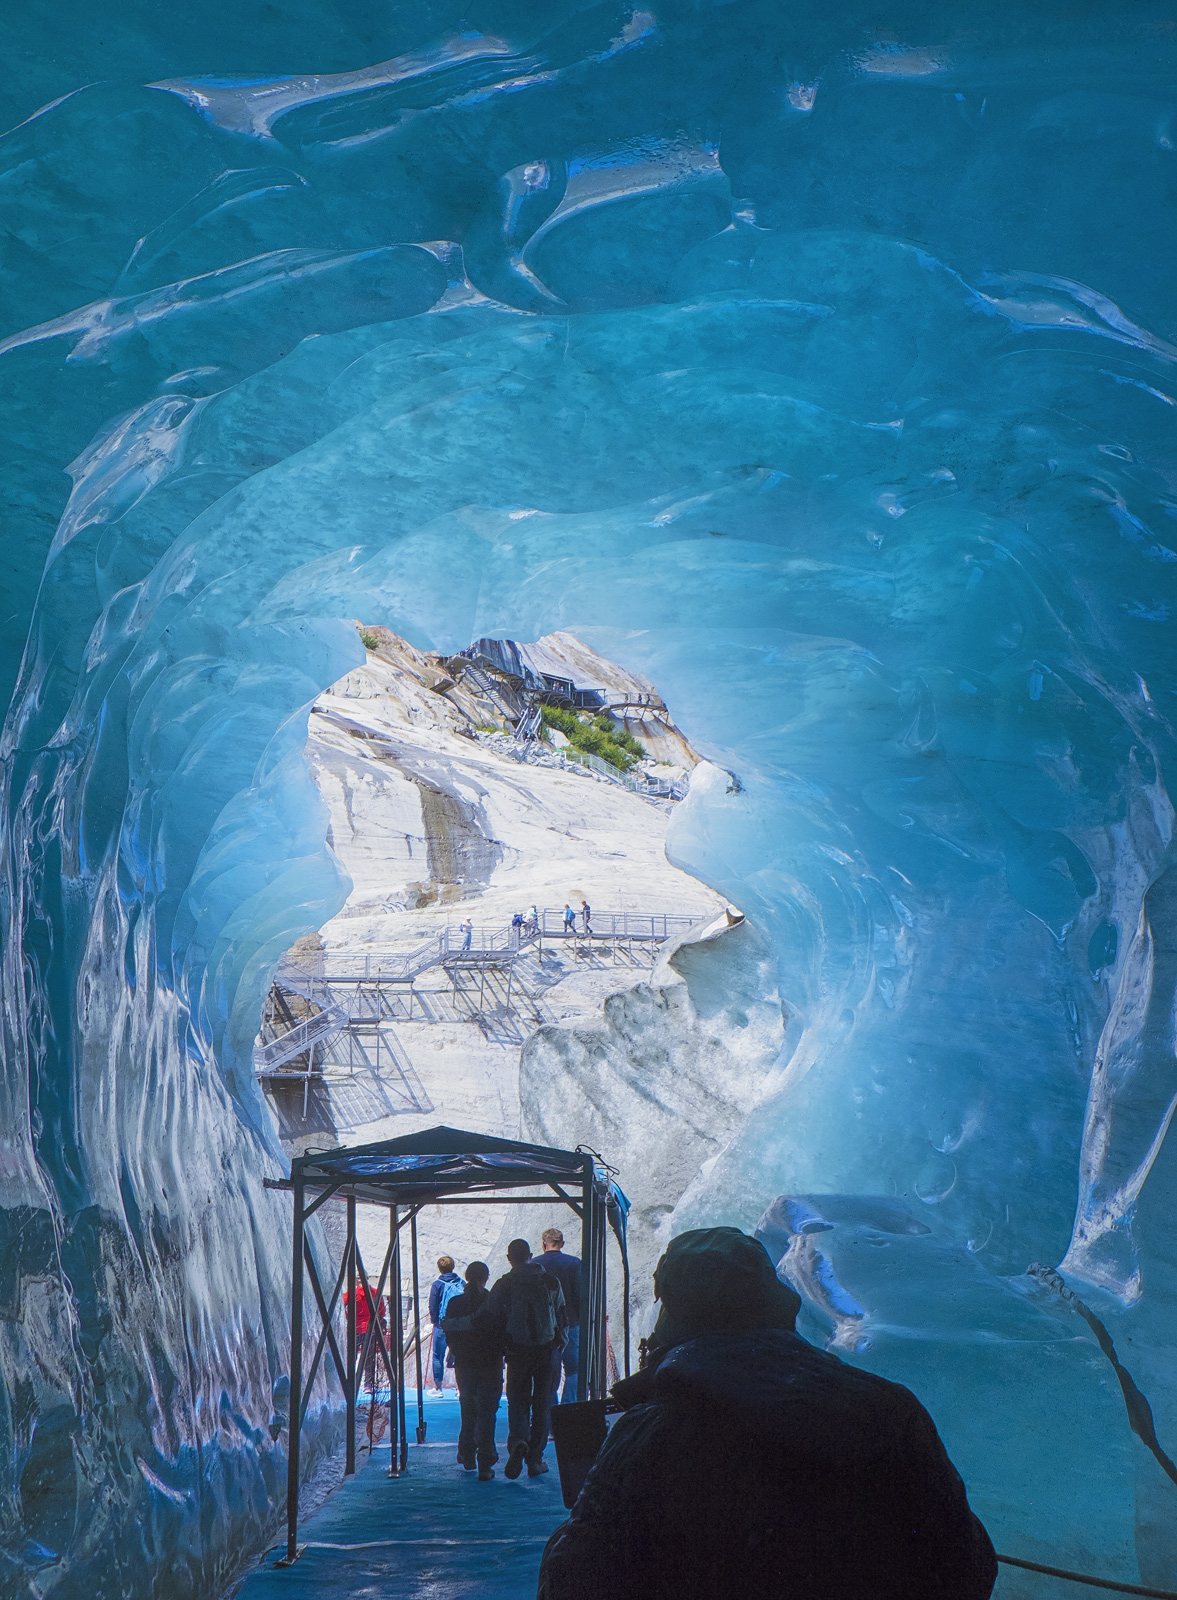 I must admit I have always wanted to see inside one of these ice caverns and witness for myself the beauty of the blue compressed...